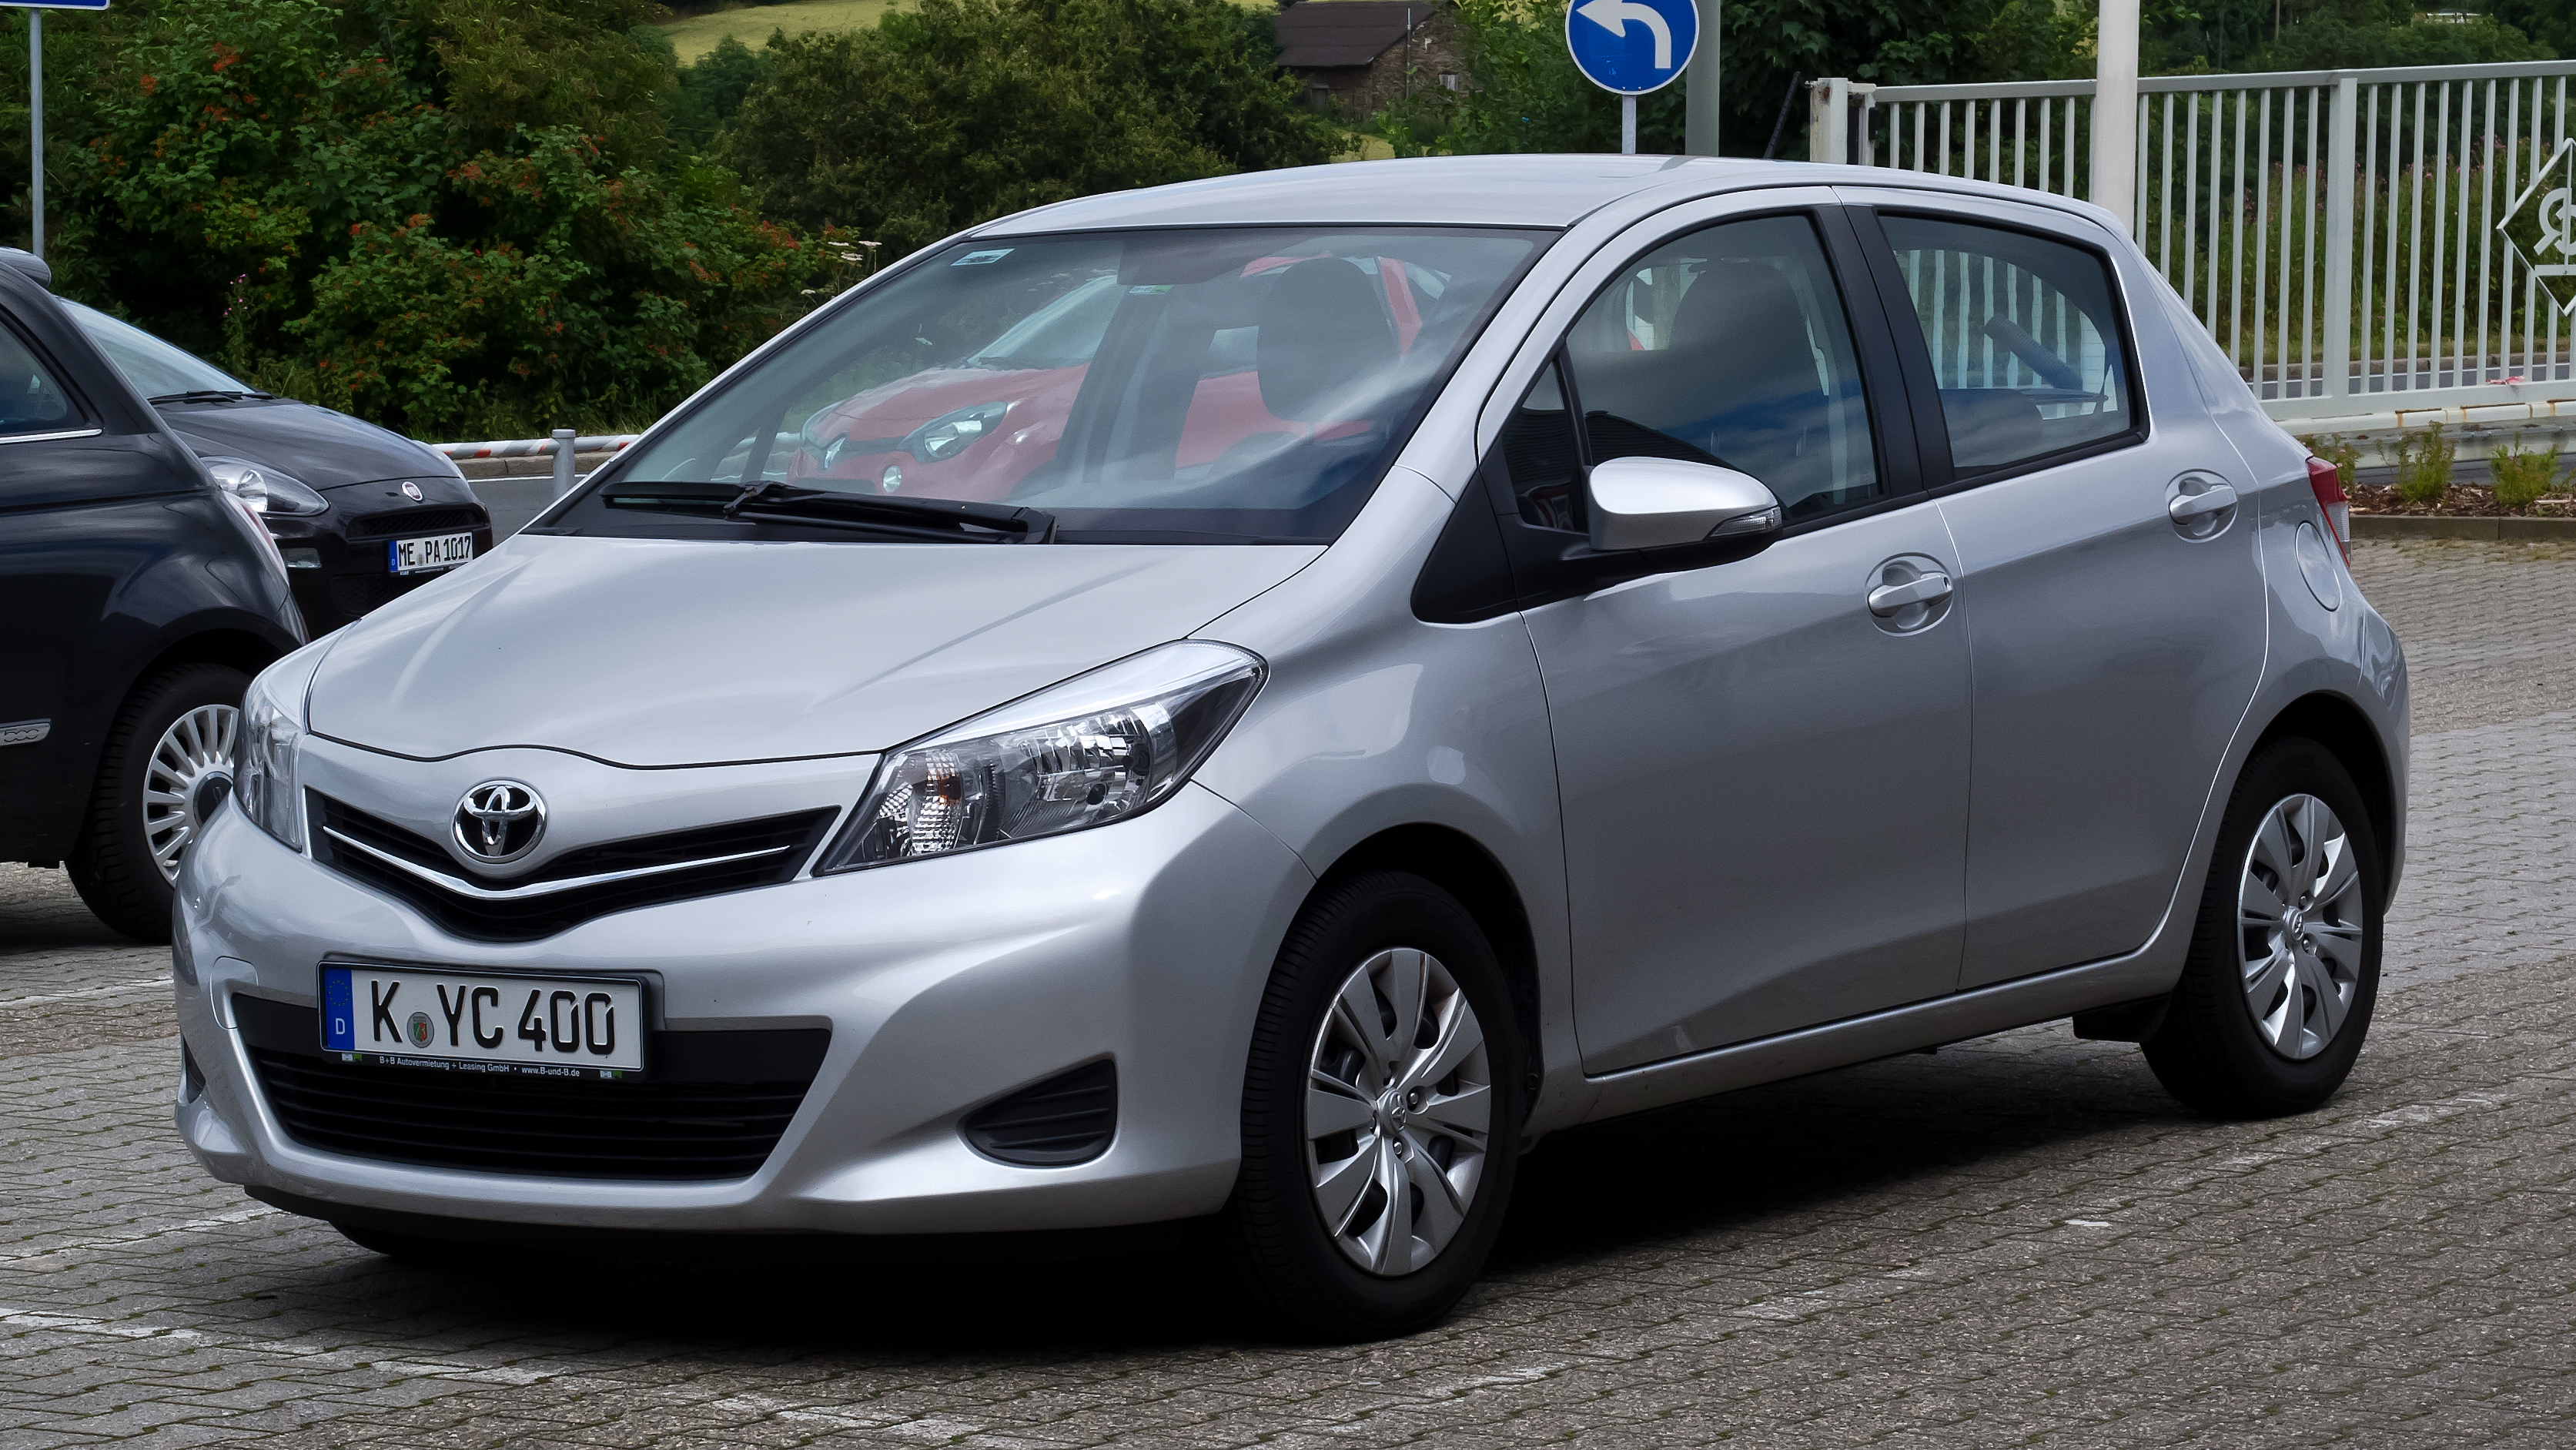 Toyota Yaris   pictures, information and specs - Auto-Database.com